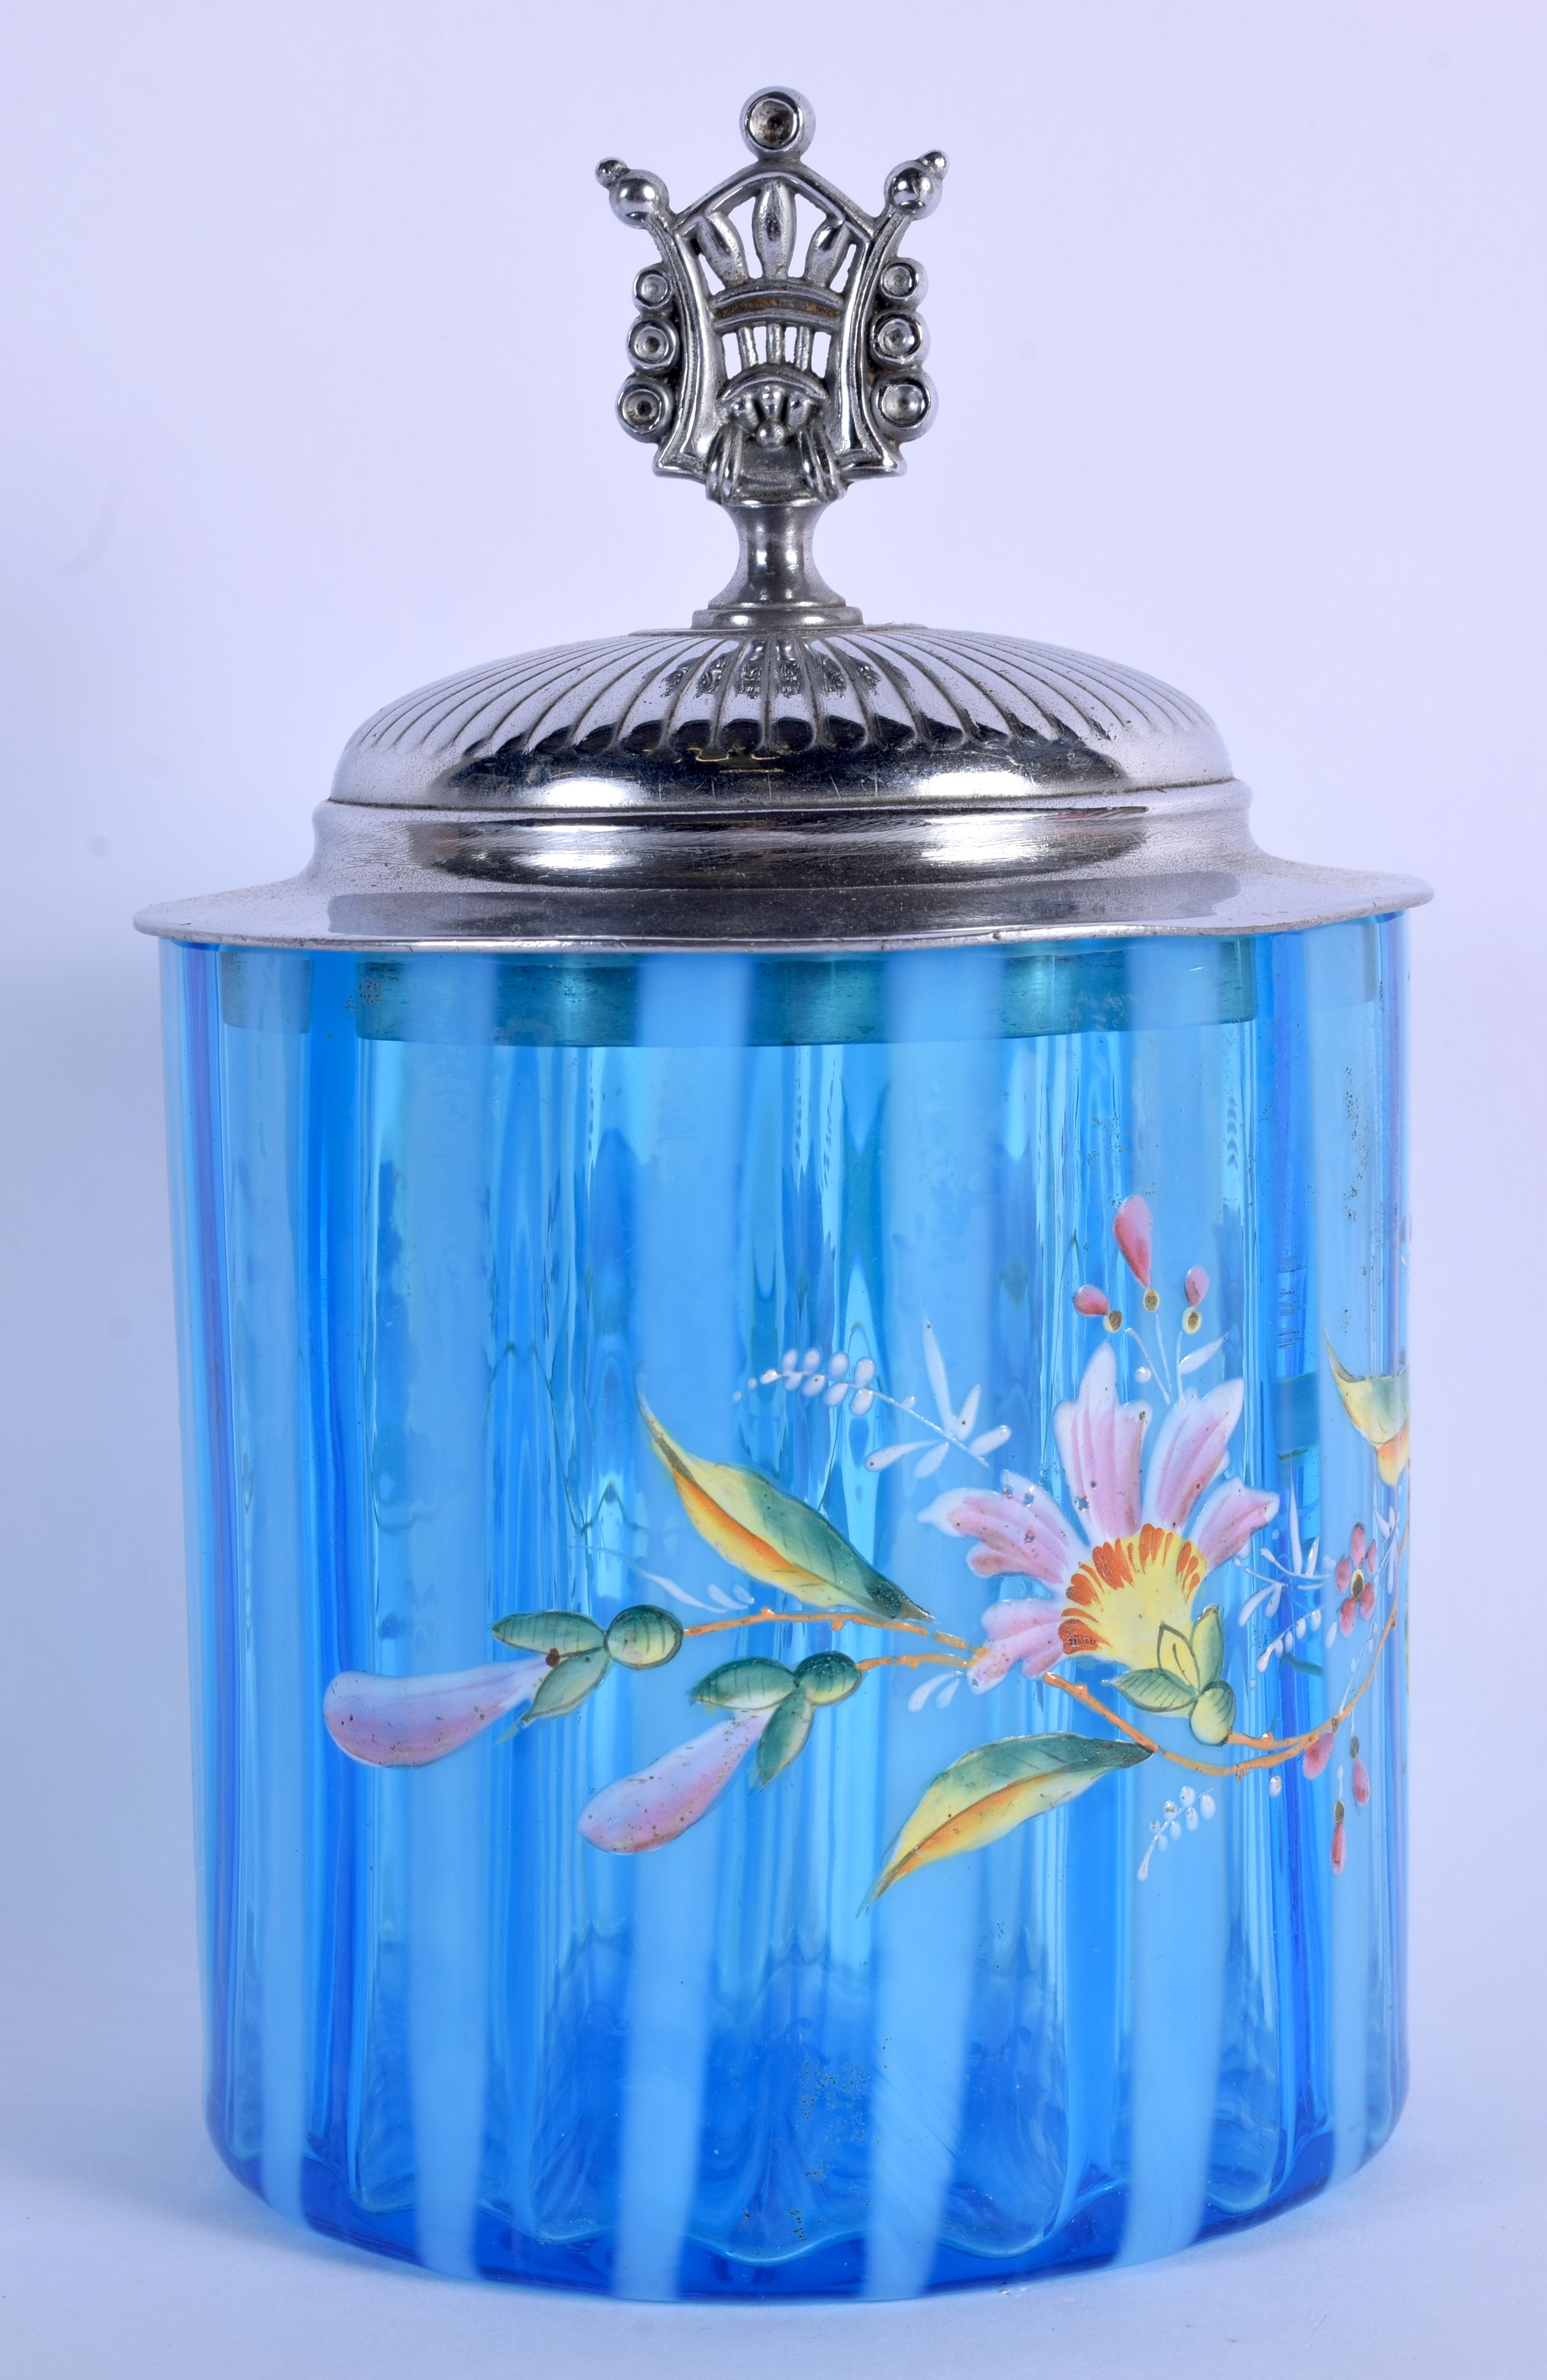 AN EDWARDIAN ENAMELLED BLUE FLASH BISCUIT BARREL AND COVER decorated with flowers. 19 cm high. - Image 2 of 4